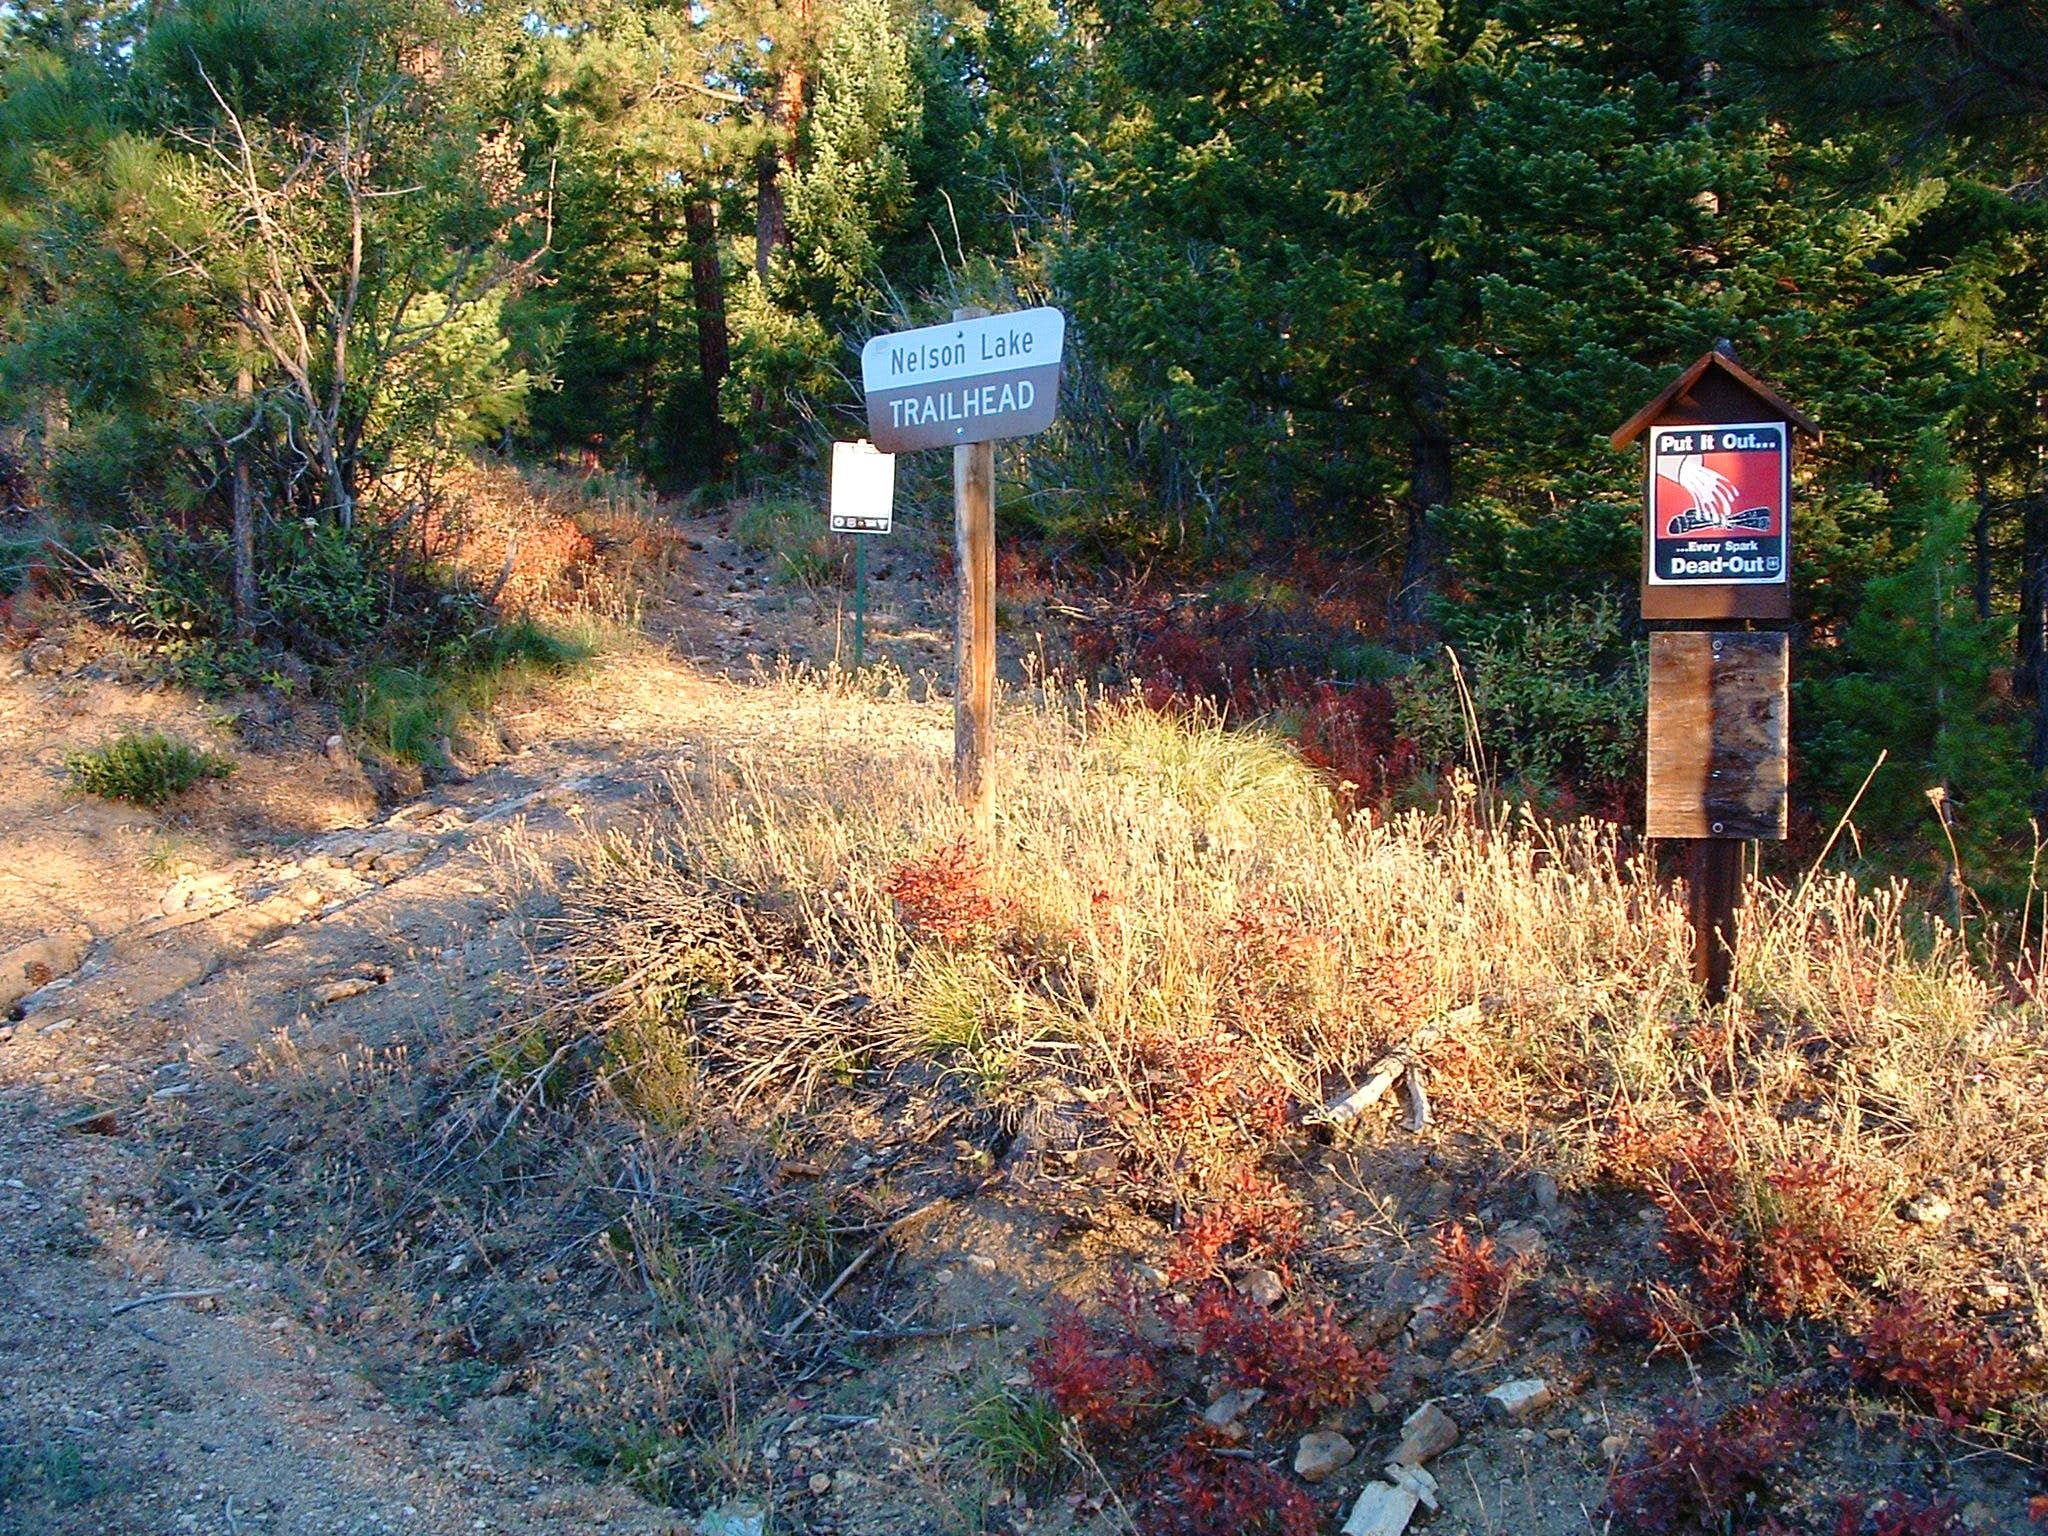 Nelson Lake Trailhead